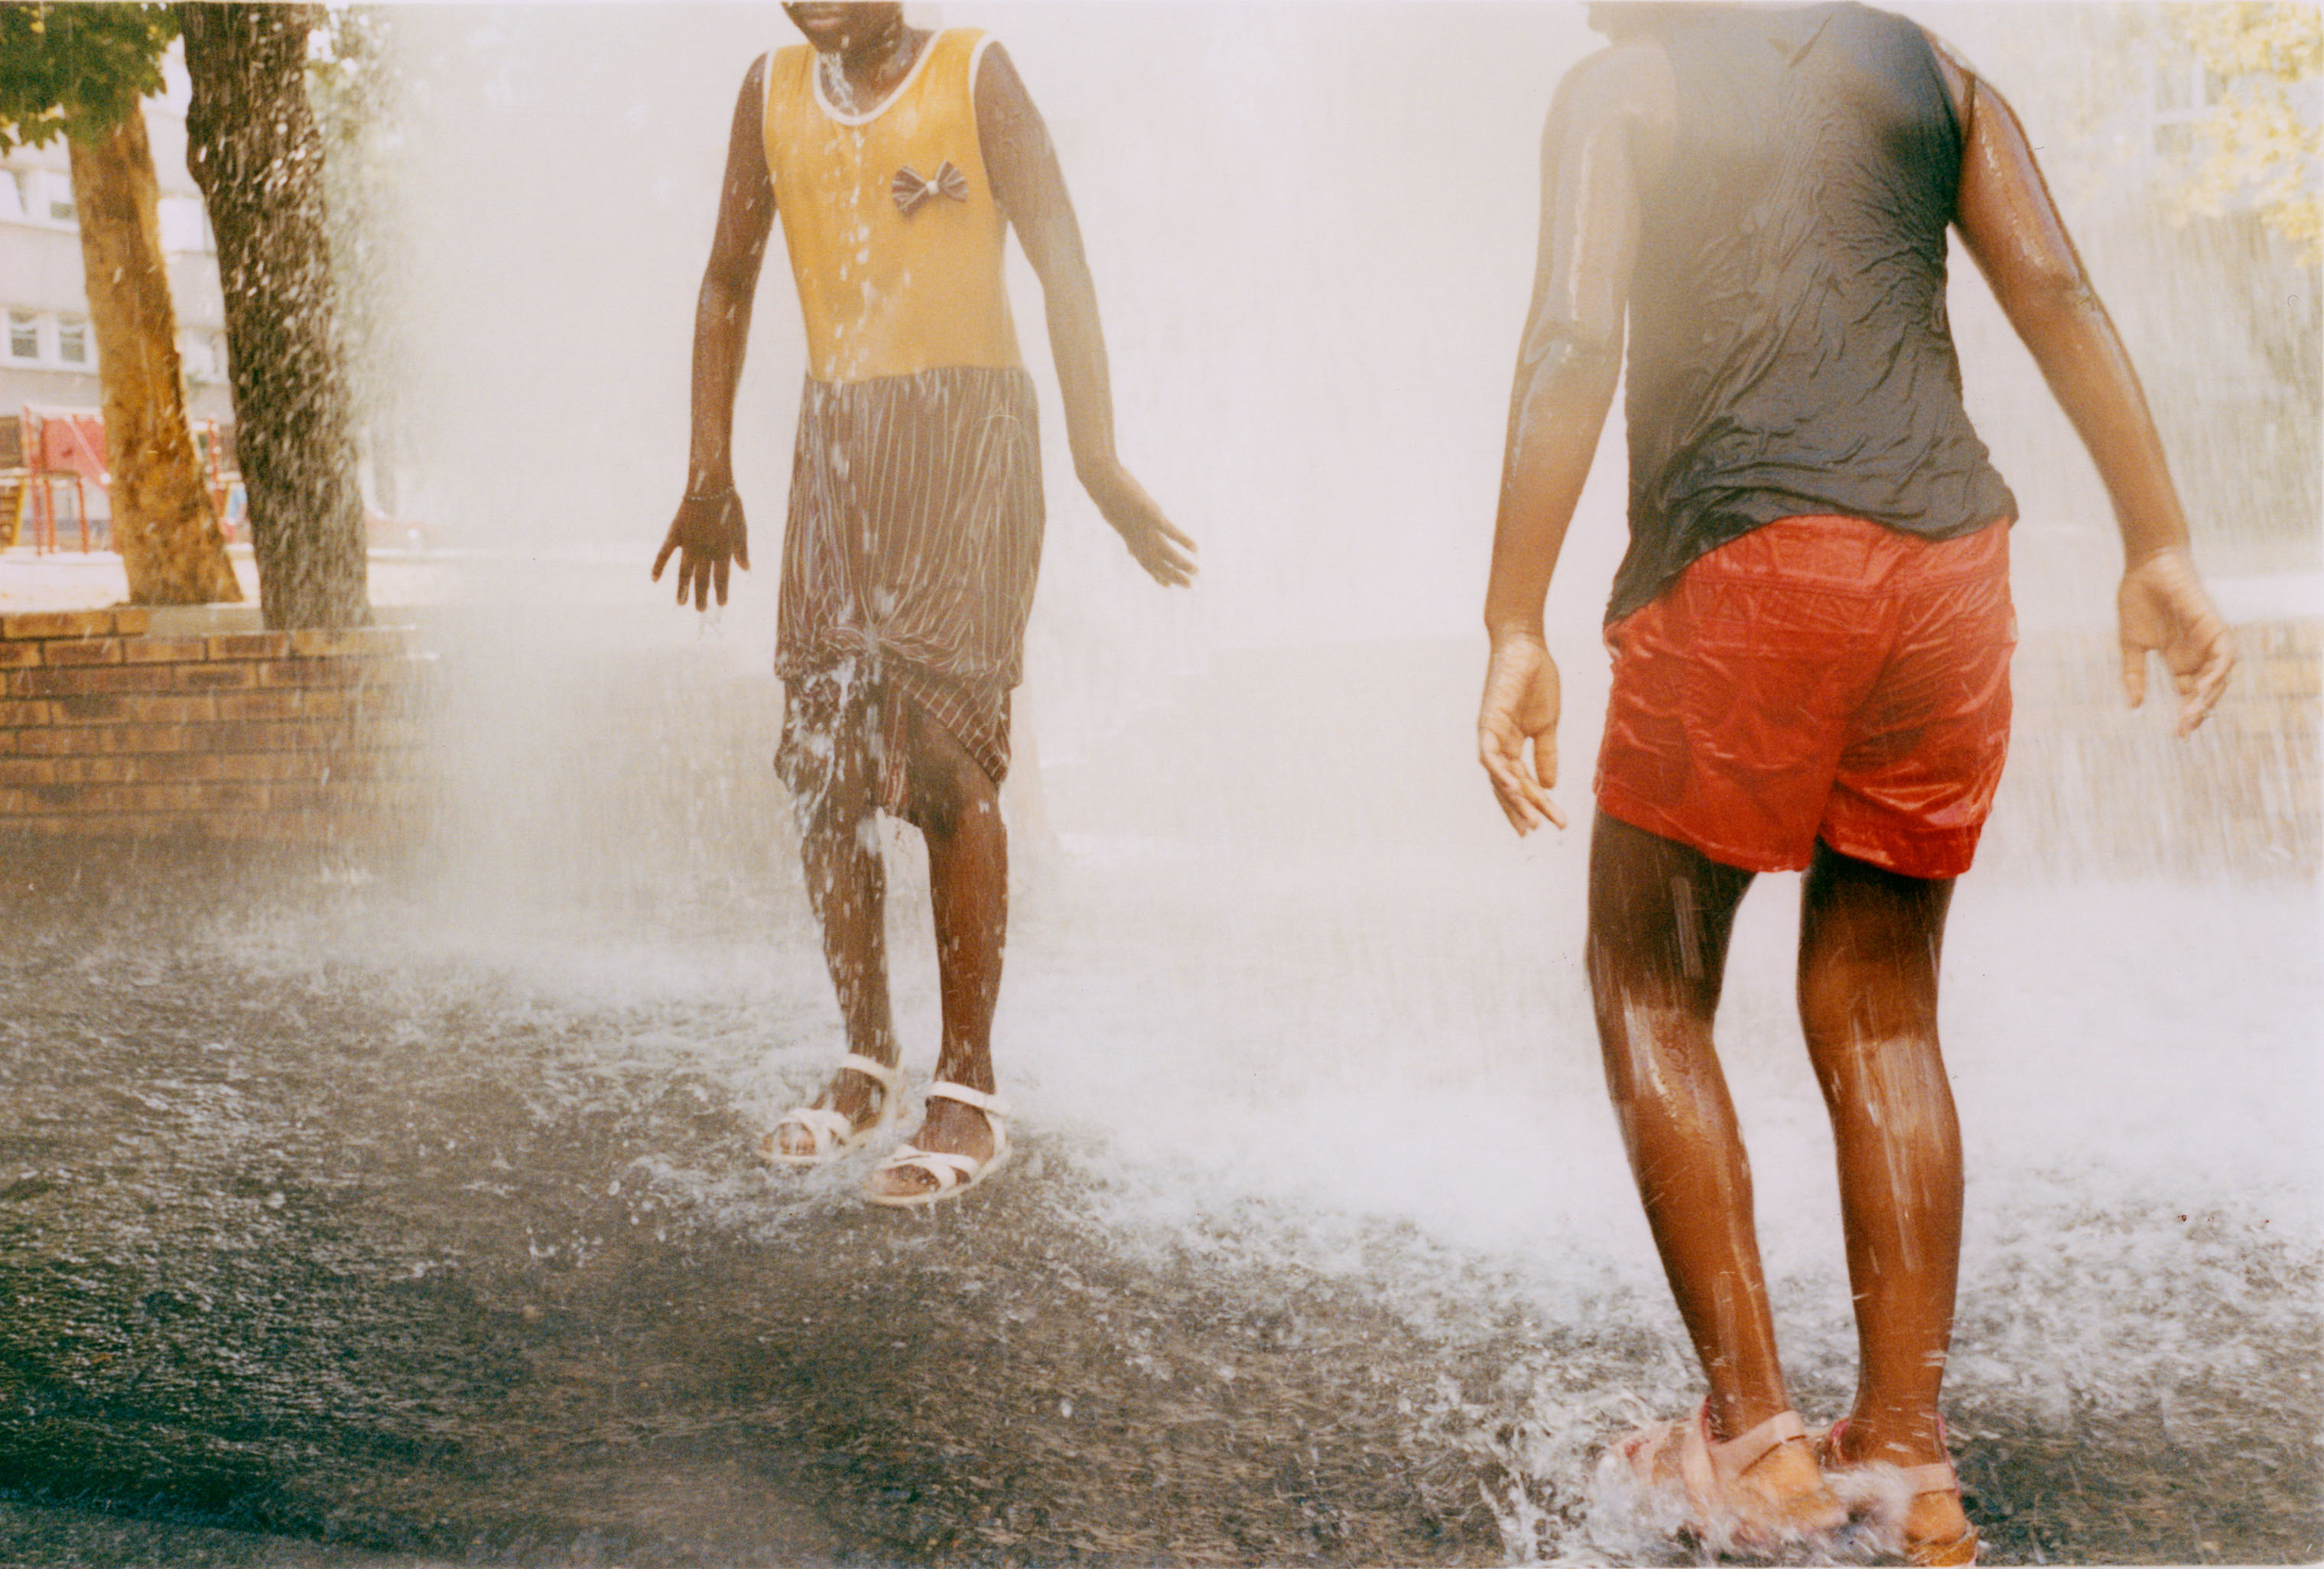 Kids keeping cool in my street during the heatwave. From my ongoing project *Paris Nord*, documenting my local neighbourhood in the suburb of Seine Saint Denis, which can be viewed in its entirety in the *Studies* section of this website. - © Maciek Pożoga